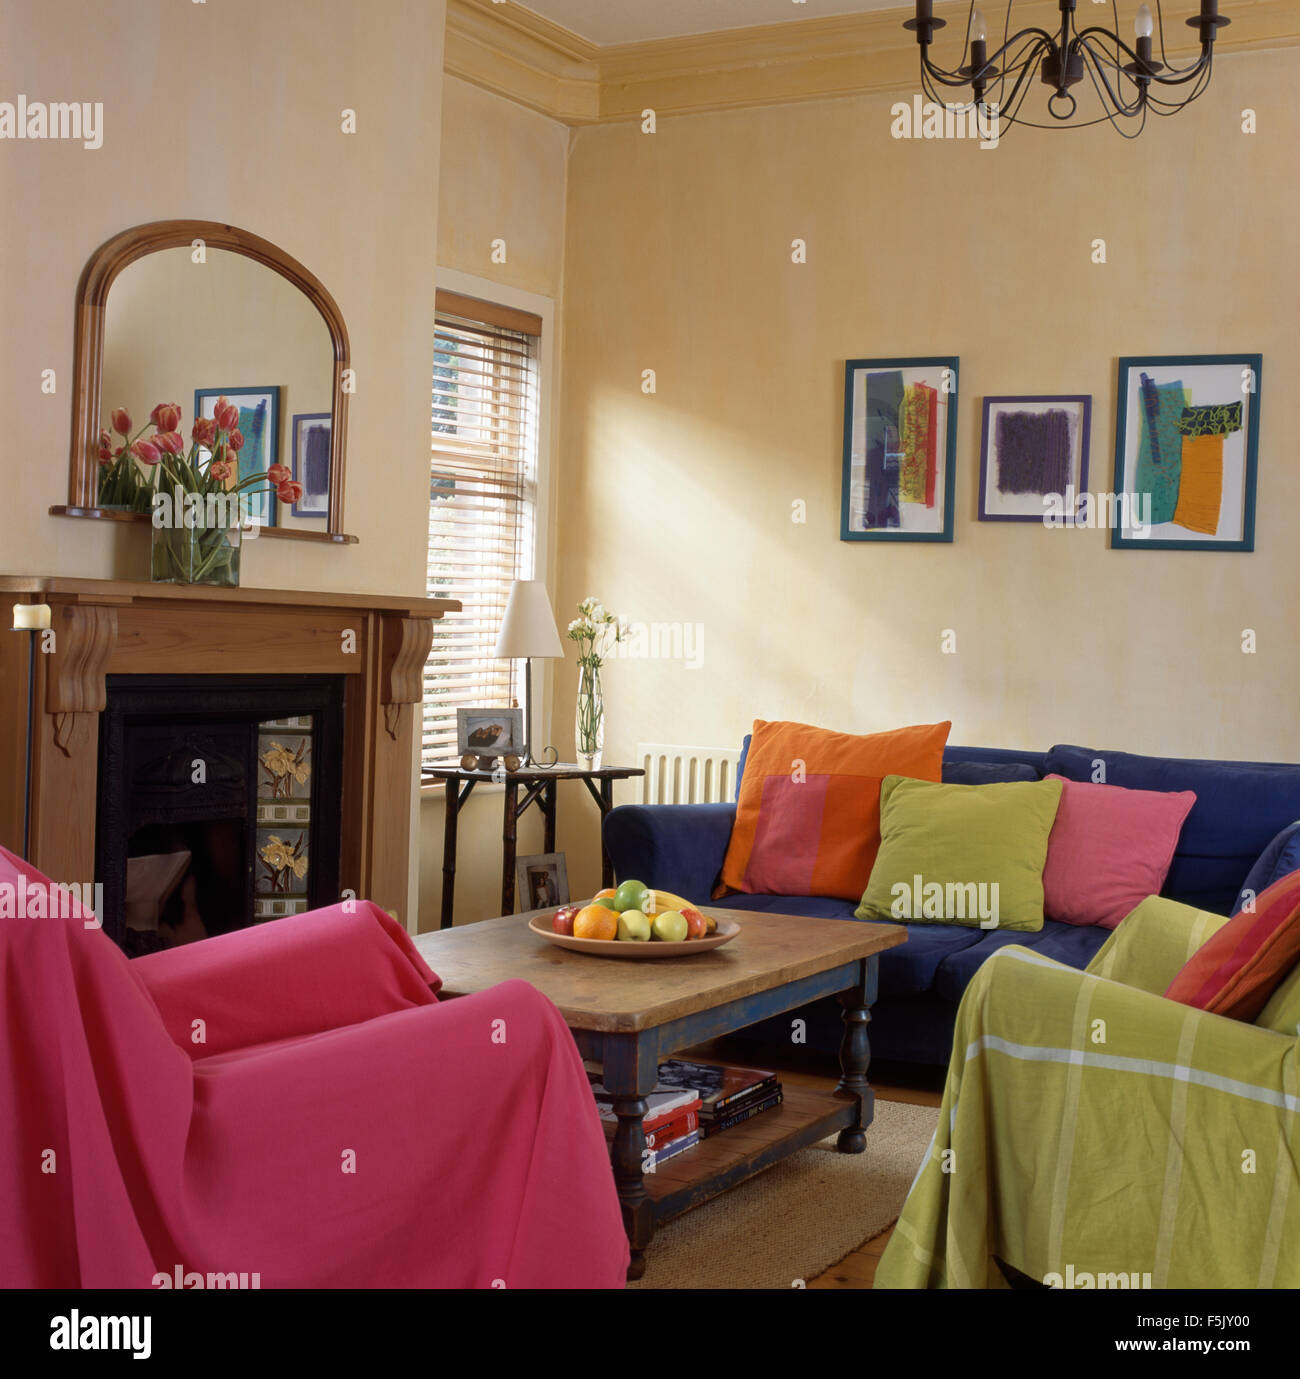 Pink And Lime Green Throws On Chairs In Economy Style Nineties Living Room  With Colorful Cushions On A Blue Sofa